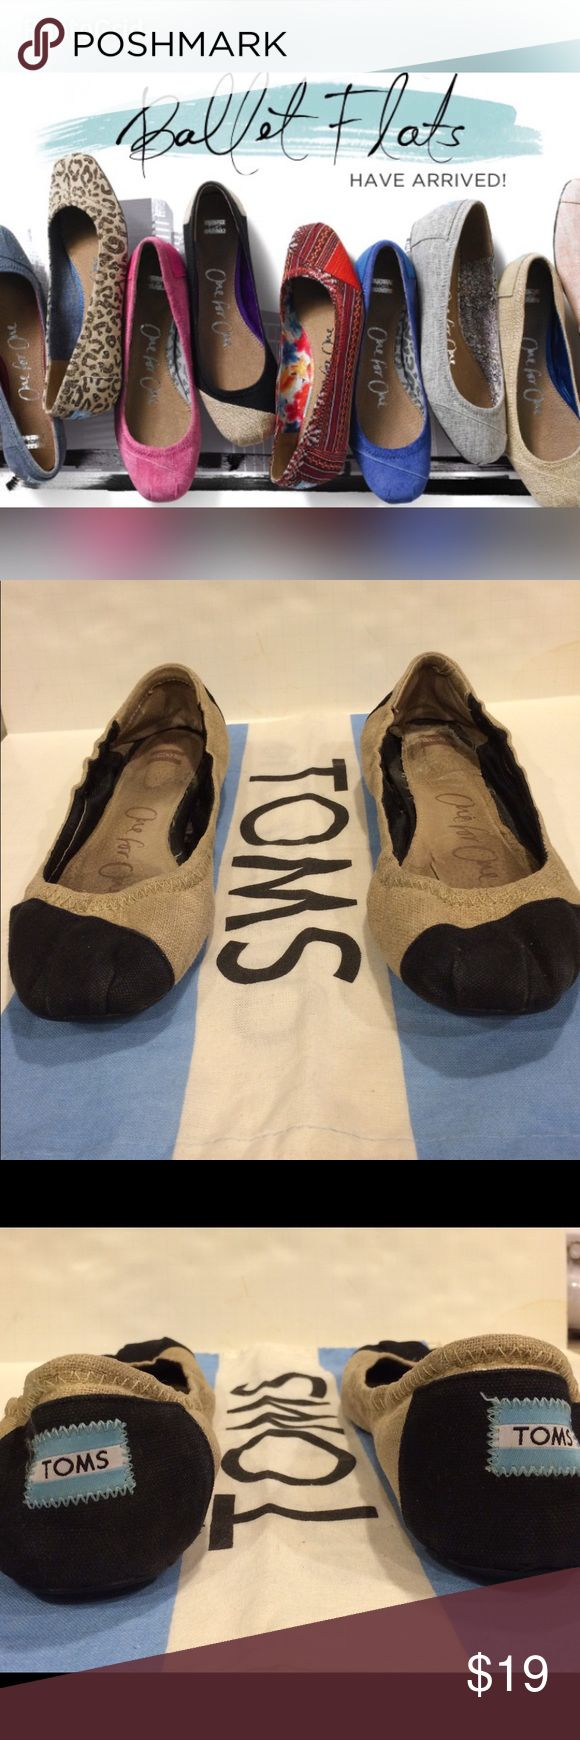 TOMS oNE FOR oNE BALLET FLATS Toms One for One natalia burlap ballet flats. Women 8 used but still in good condition, priced accordingly. Please feel free to ask questions before purchasing. TOMS Shoes Flats & Loafers